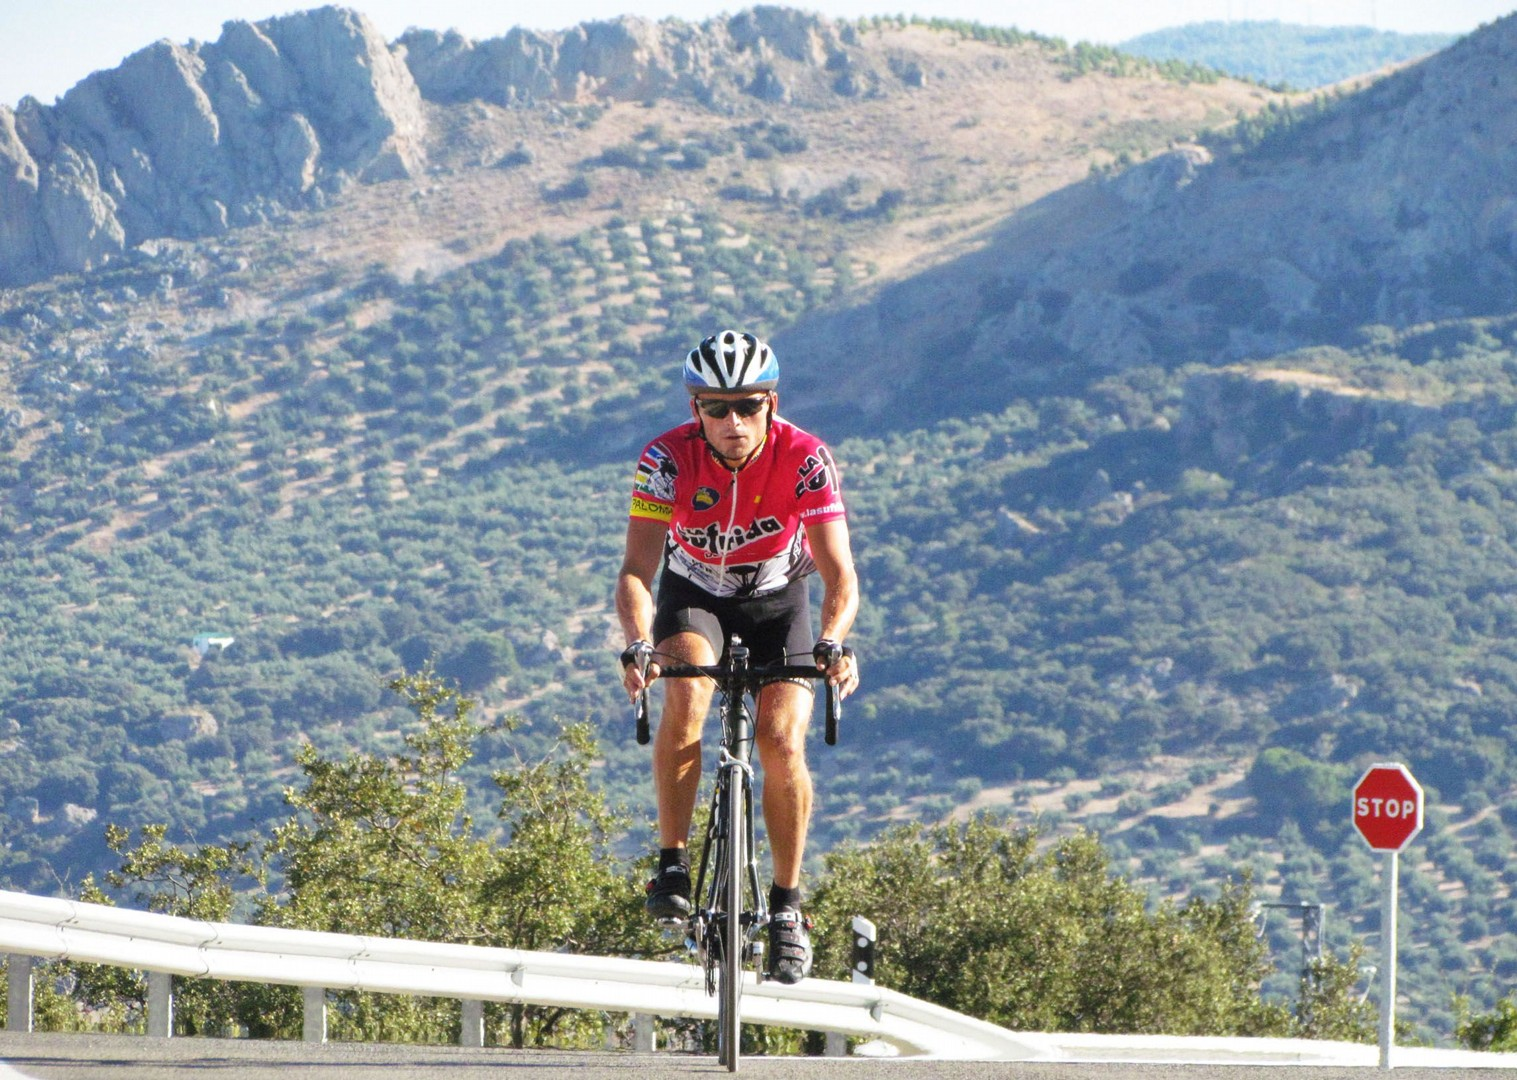 southern-spain-andalucia-cape-to-cape-traverse-guided-road-cycling-holiday-Tabernas-desert.jpg - Southern Spain - Andalucia - Cape to Cape Traverse - Guided Road Cycling Holiday - Road Cycling